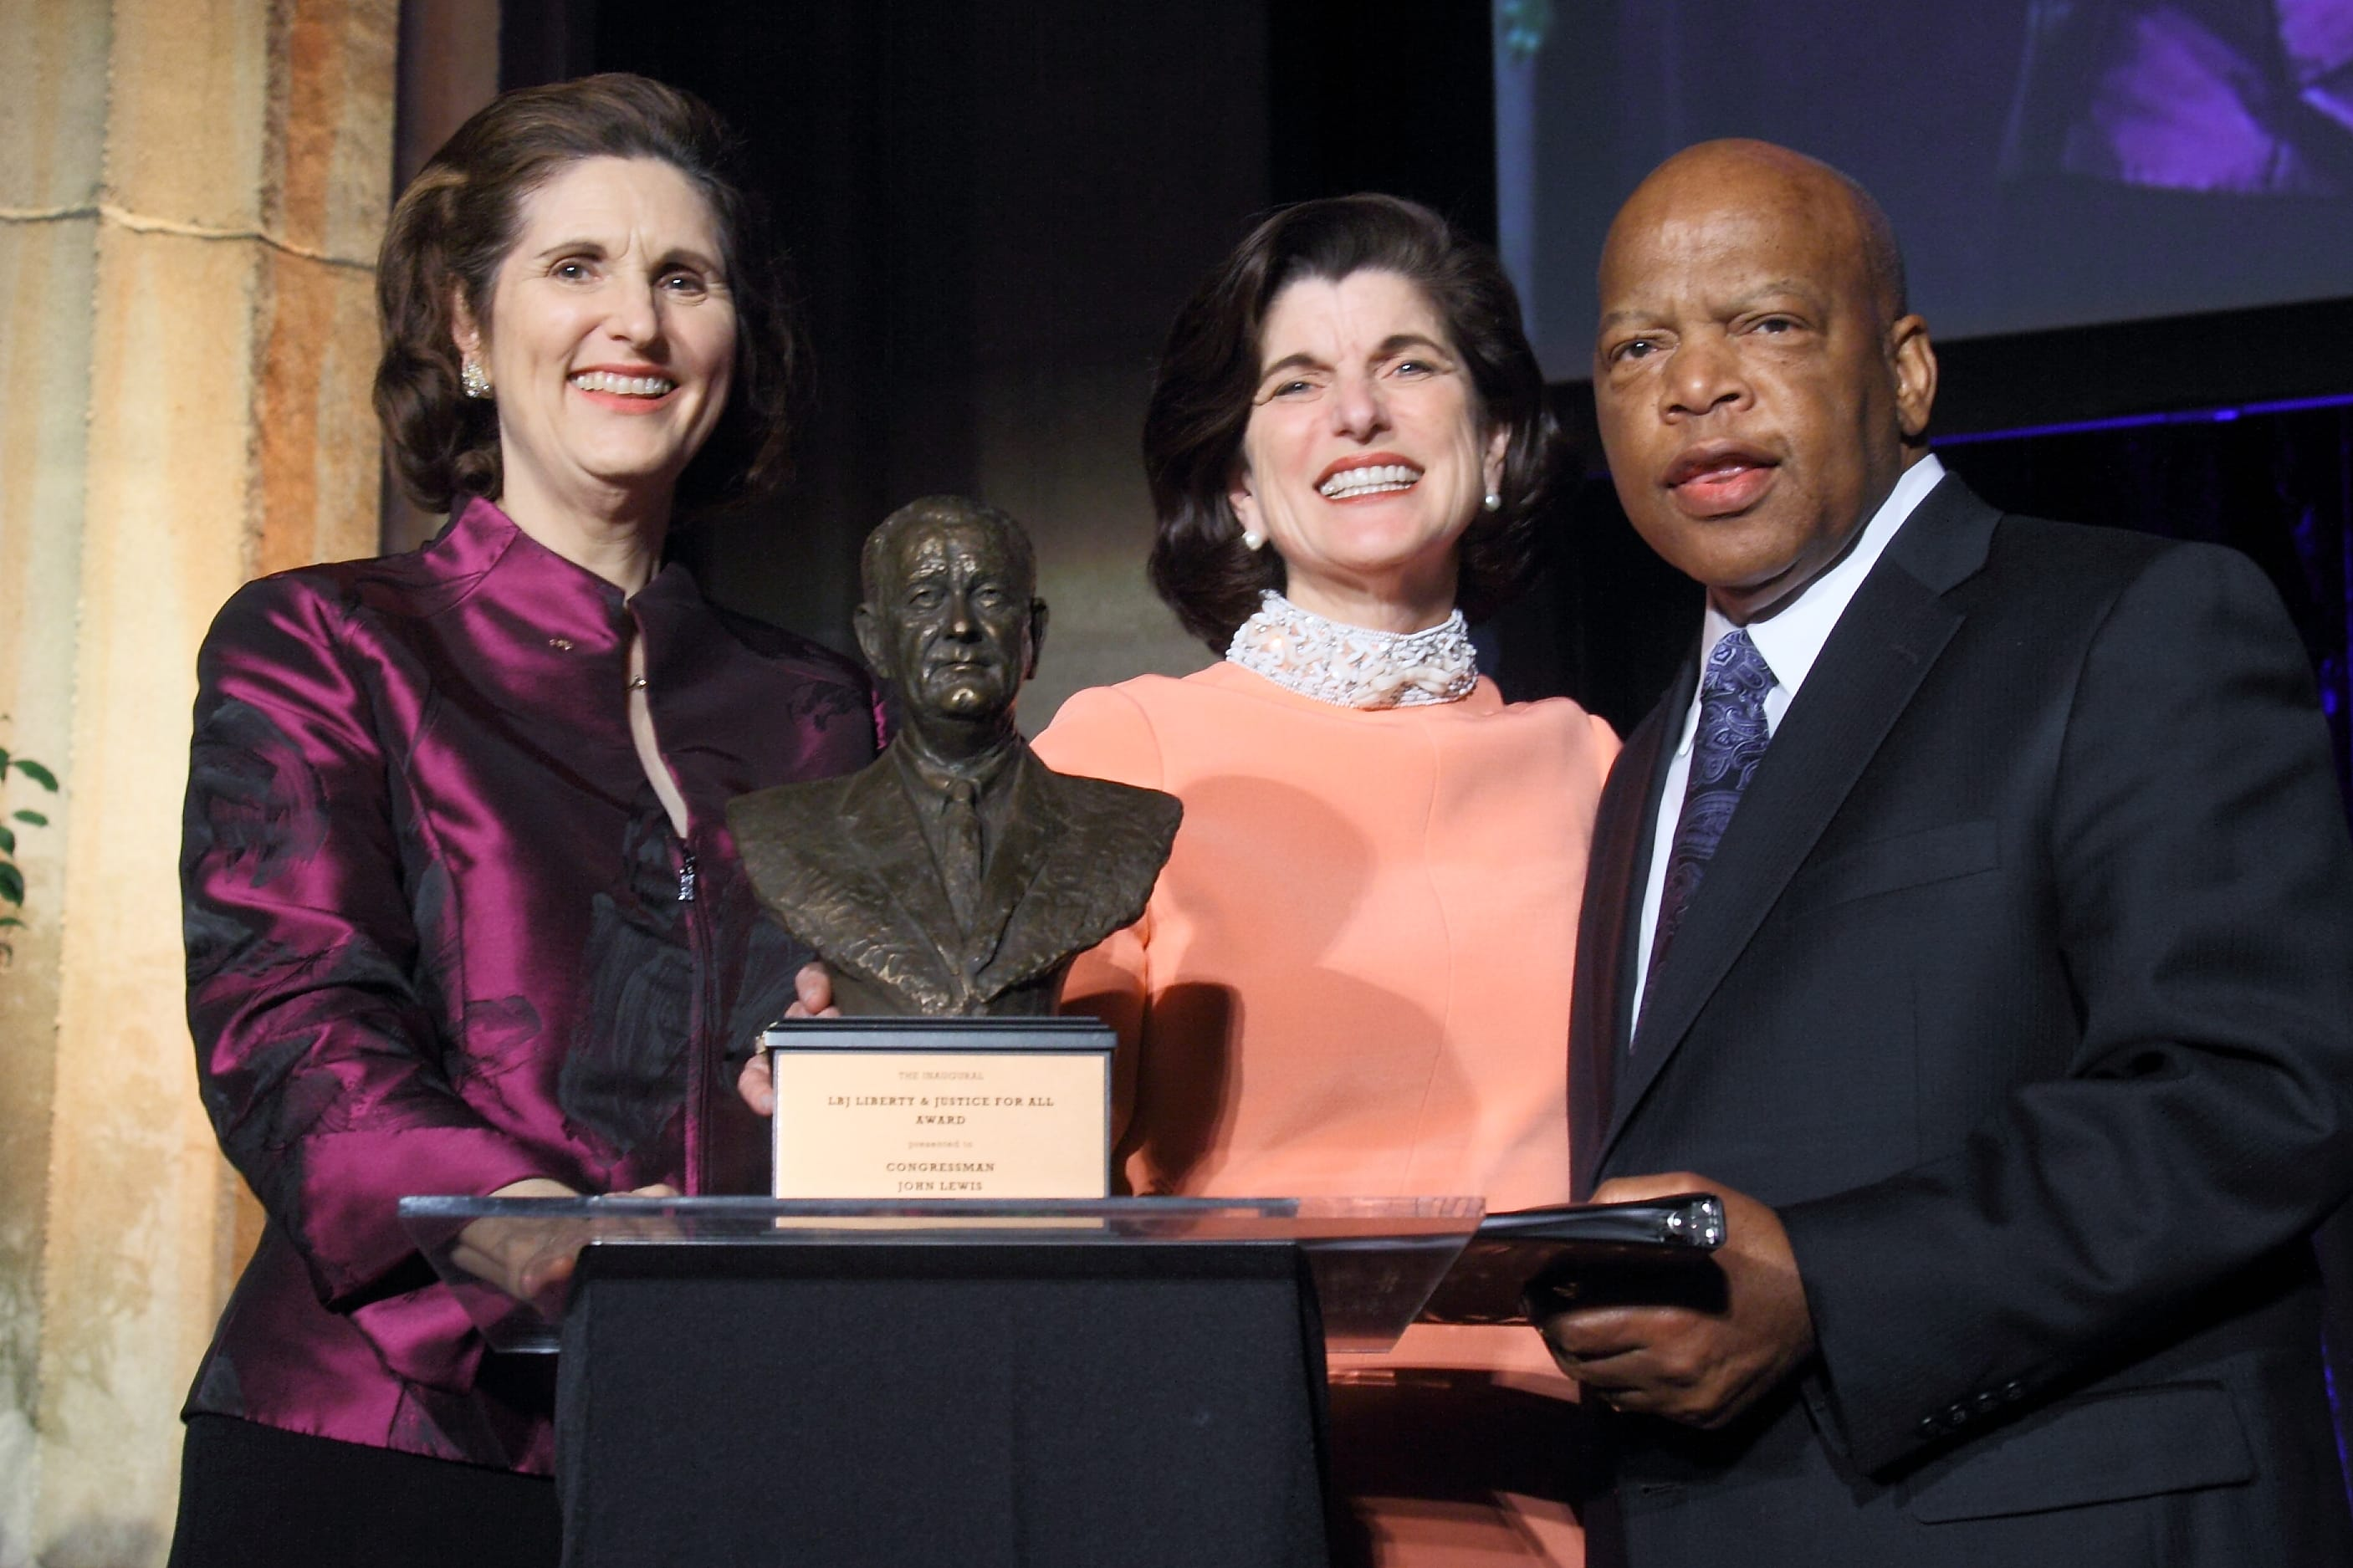 John Lewis receives the first Liberty and Justice For All Award